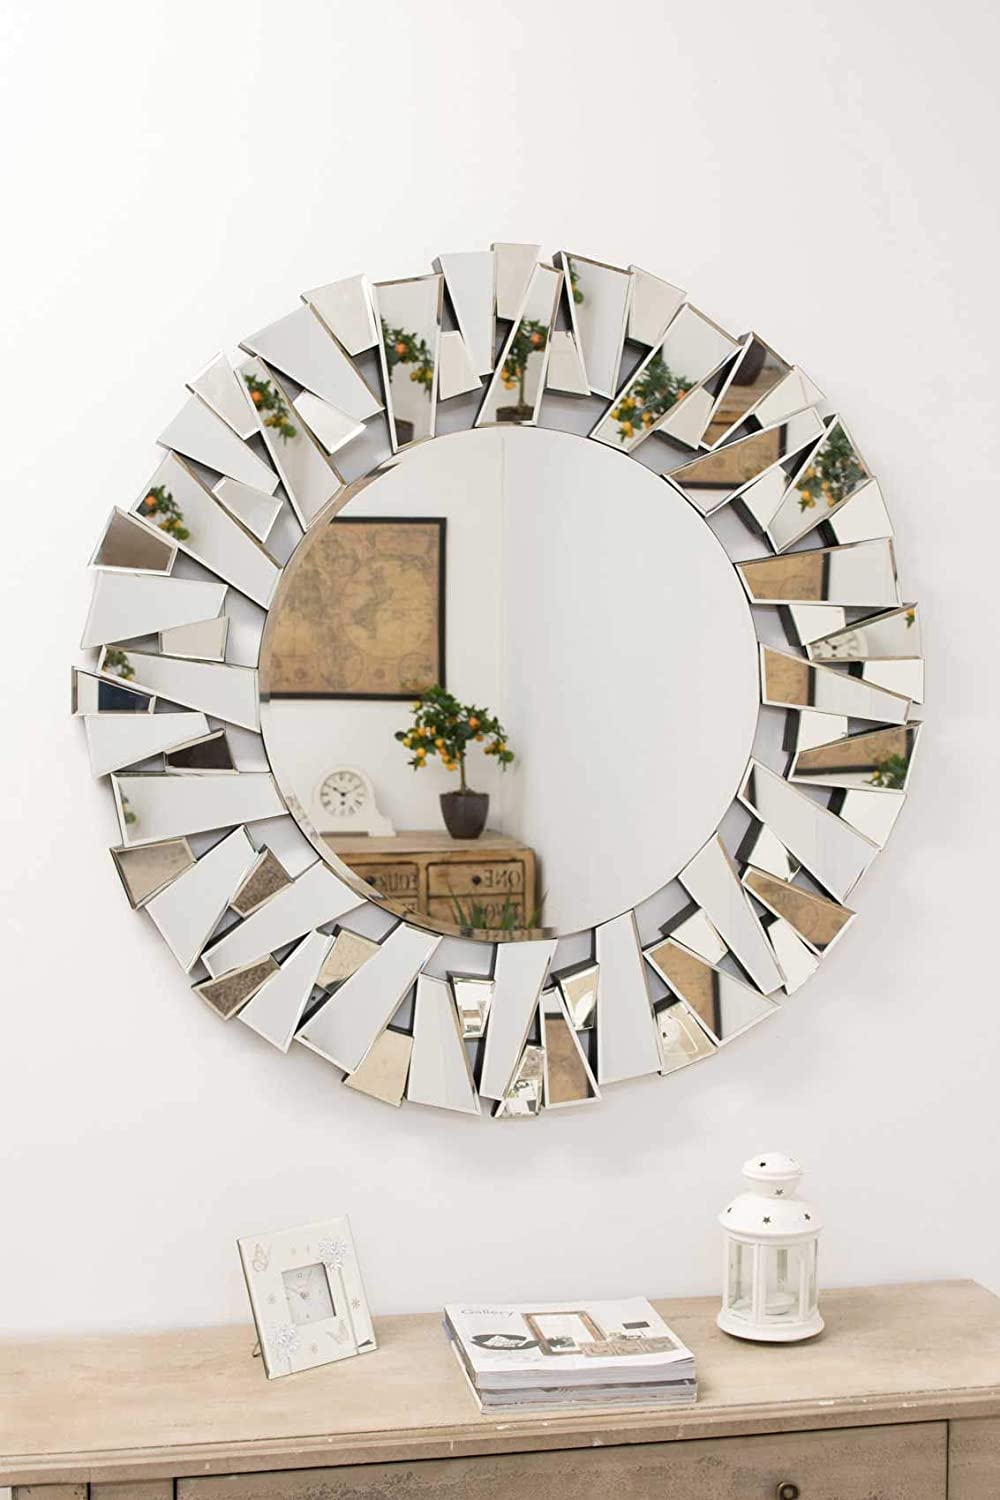 Buy Alfa Design Decorative Contemporary Round Wall Mirror Plain Mirror For Bathroom Home Decorative Wall Mirror Wood Core Backing 12mm Mirror Size 30 X 30 Inch Online At Low Prices In